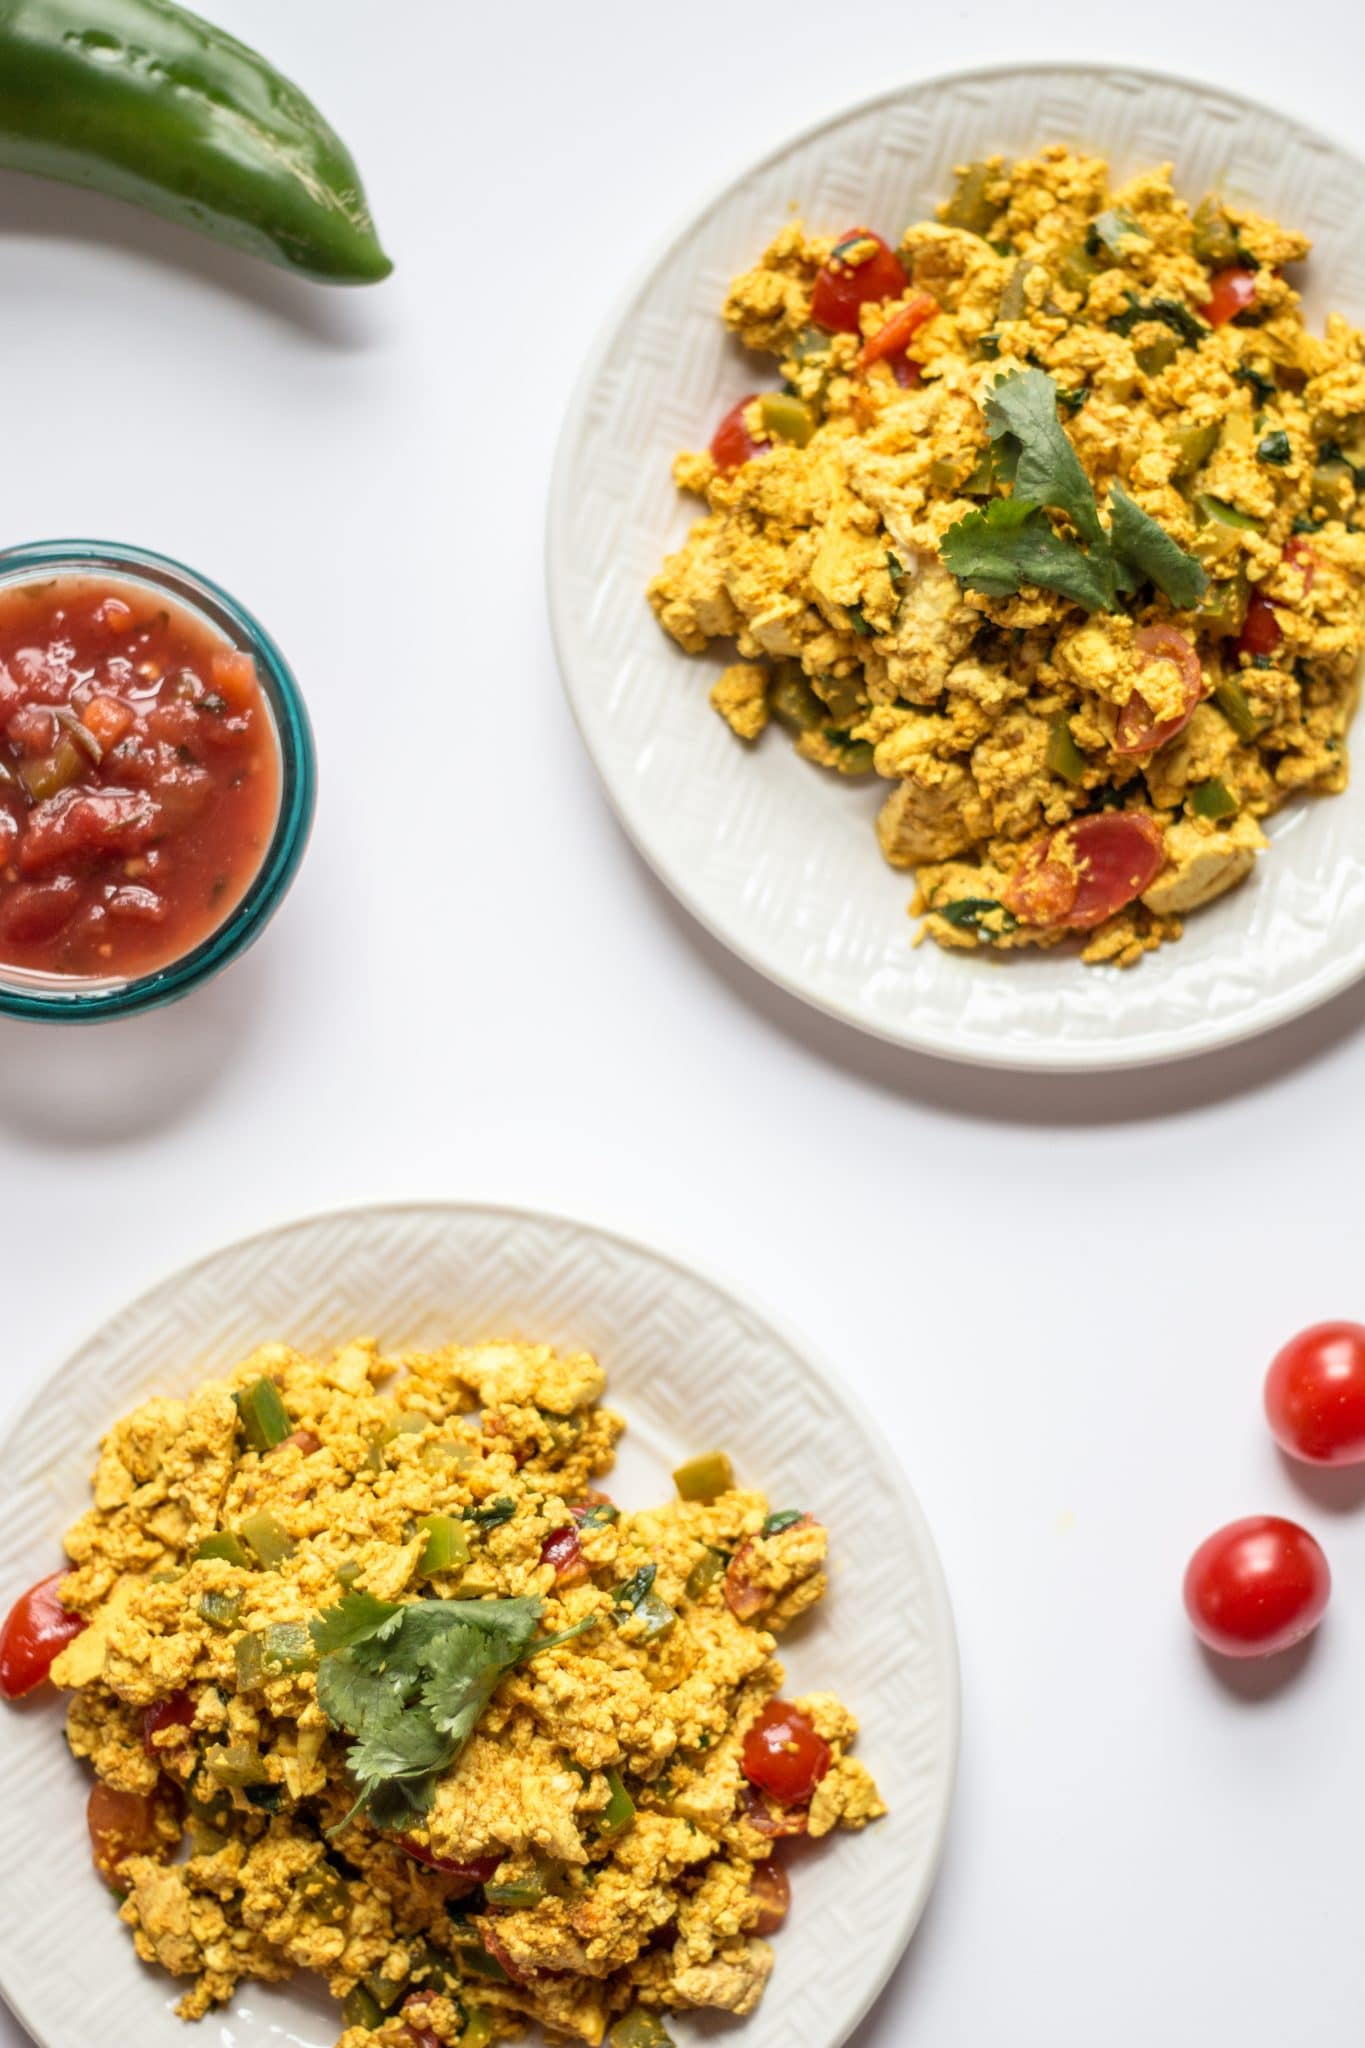 25 Vegan Breakfast Recipes - healthy mostly gluten-free recipes to start your morning with. | thehealthfulideas.com